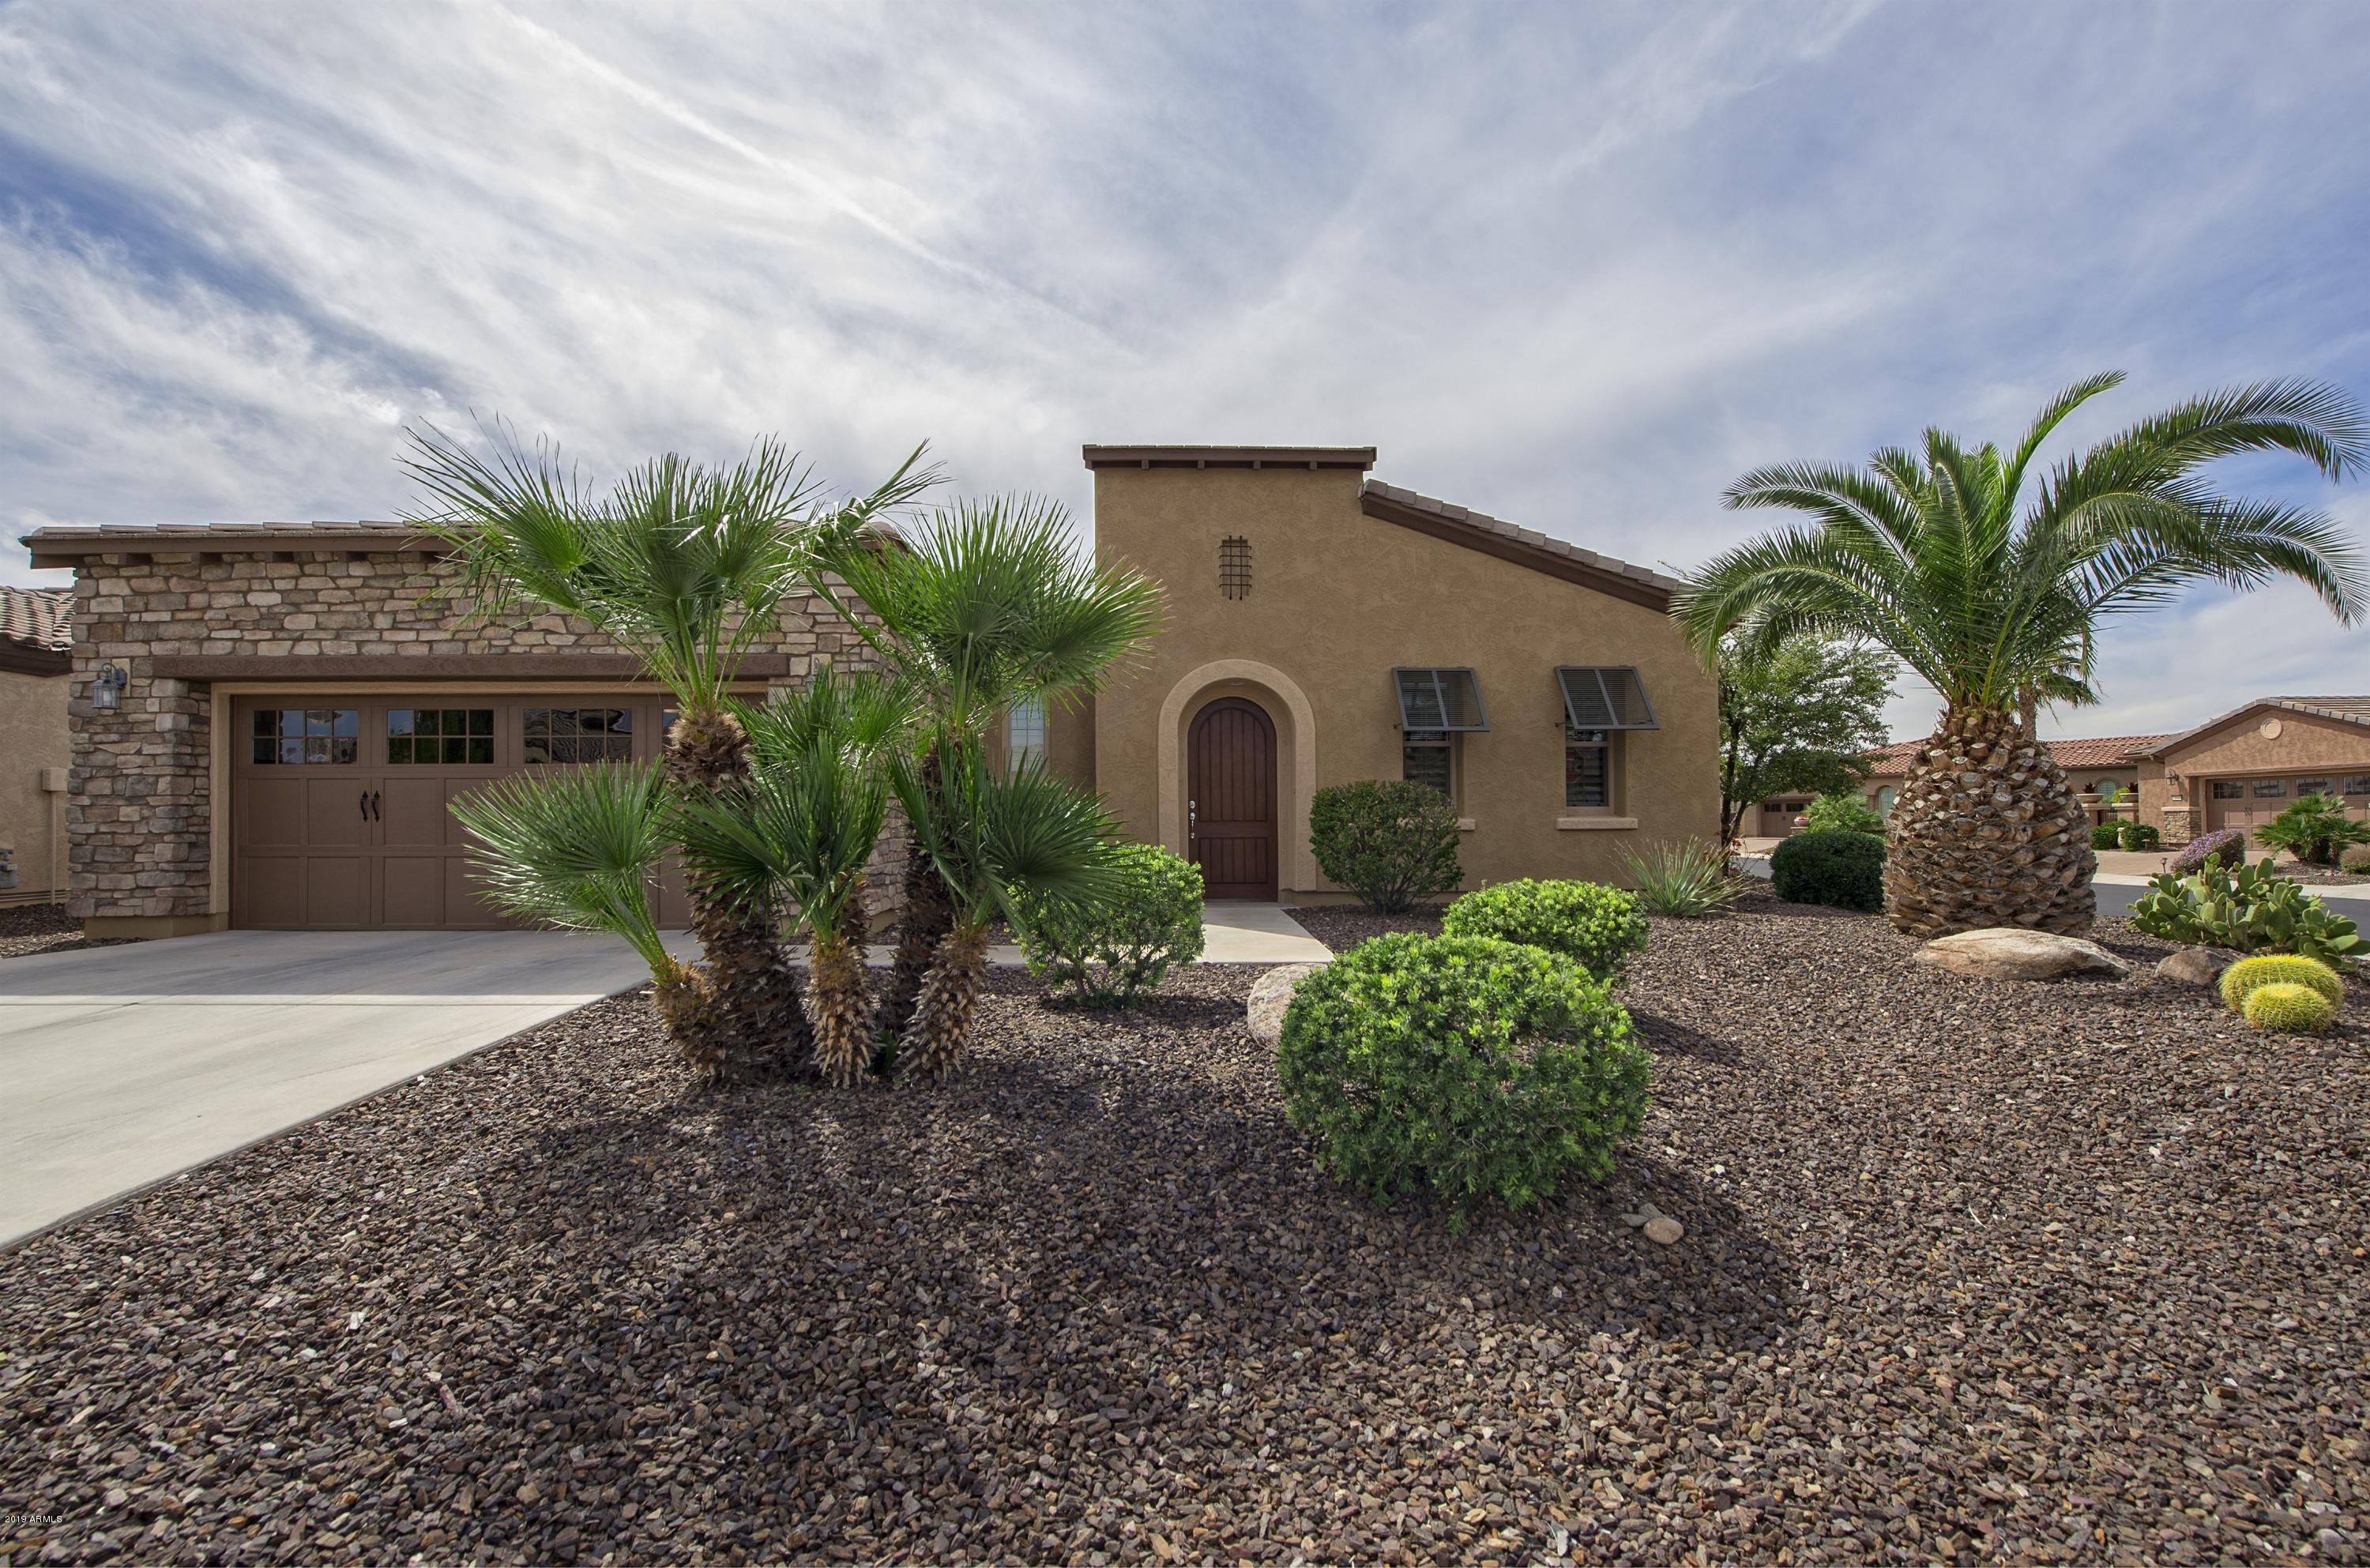 29440 N 130TH Drive, Peoria in Maricopa County, AZ 85383 Home for Sale